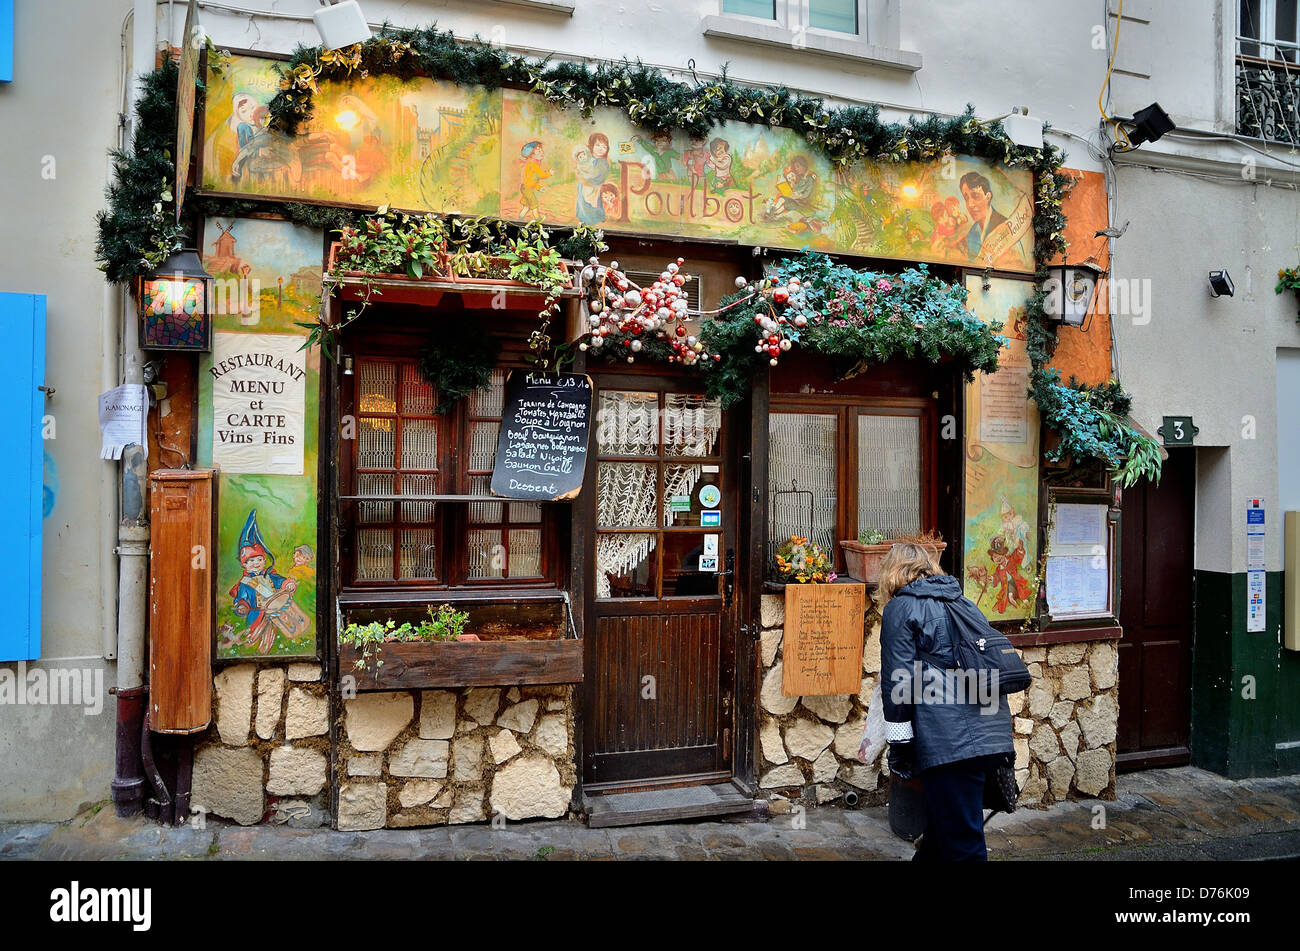 Exterior of la poulbot restaurant montmartre paris france for Restaurant miroir montmartre